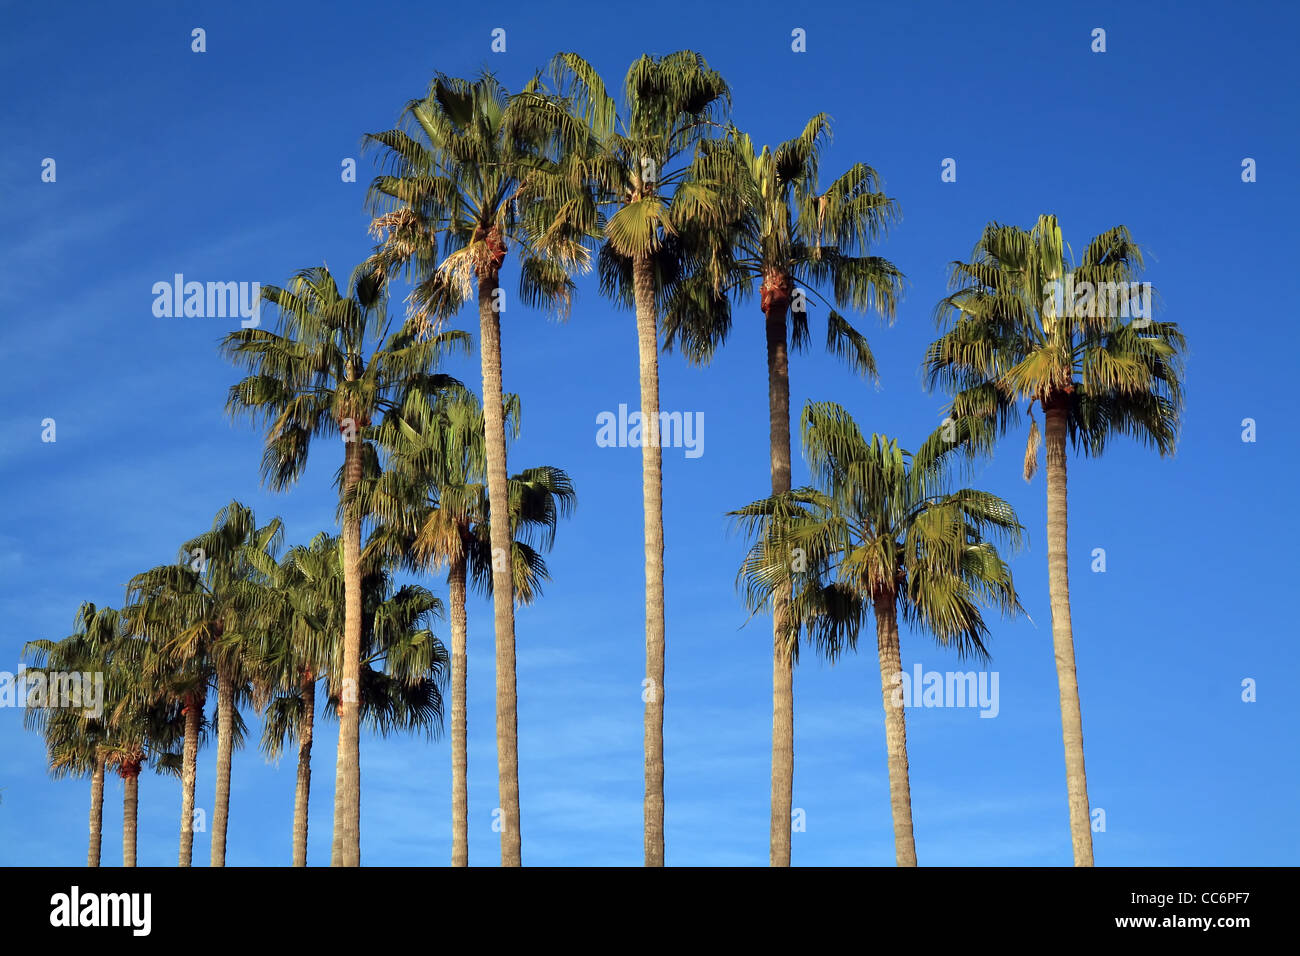 Mediterranean palm trees by the beach in the French Riviera. - Stock Image